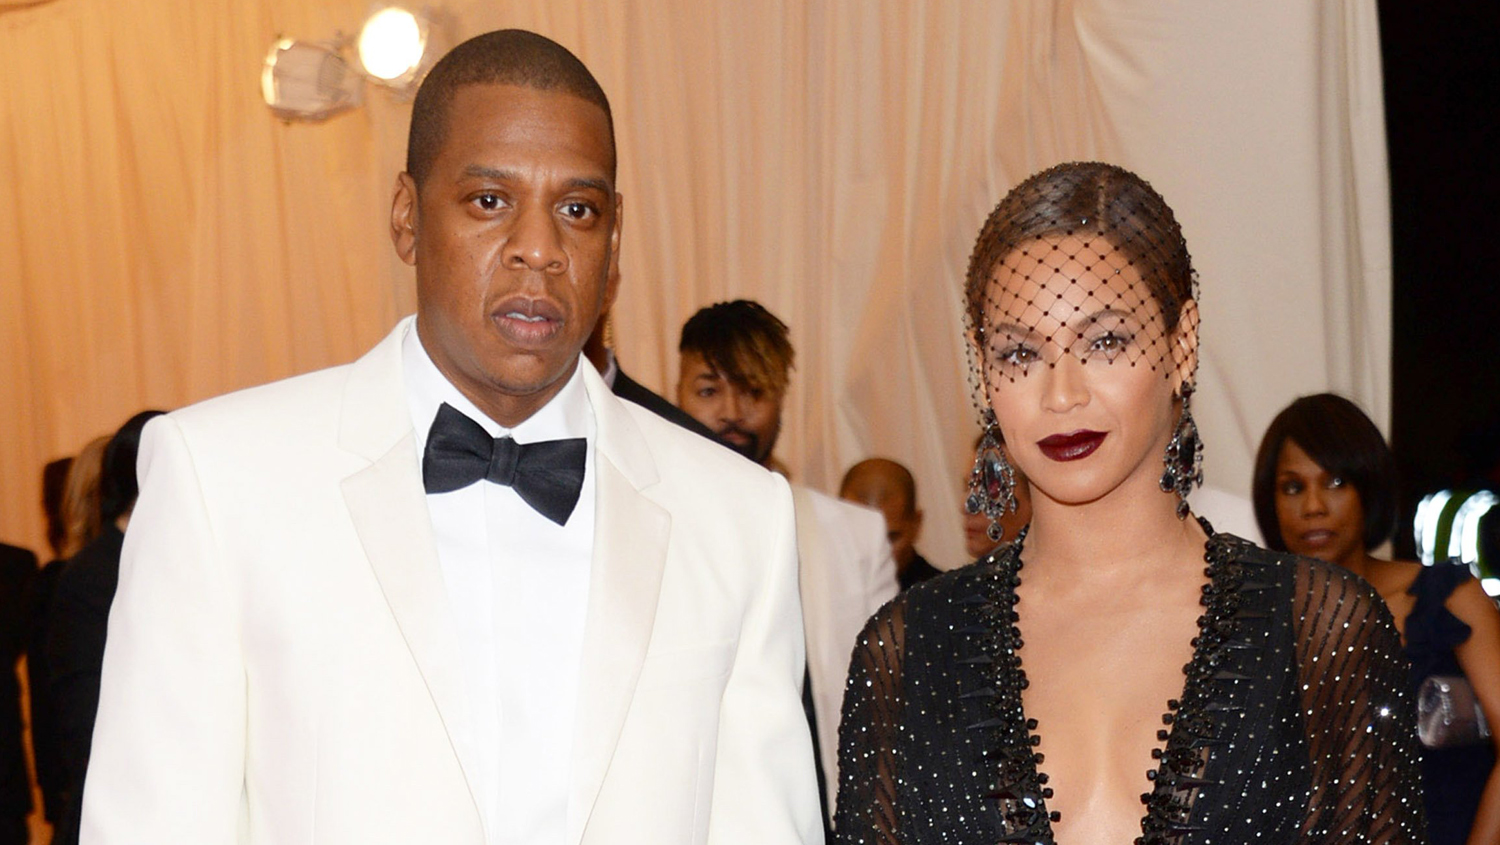 Beyoncé Alludes to the Elevator Fight in New SongRemix foto